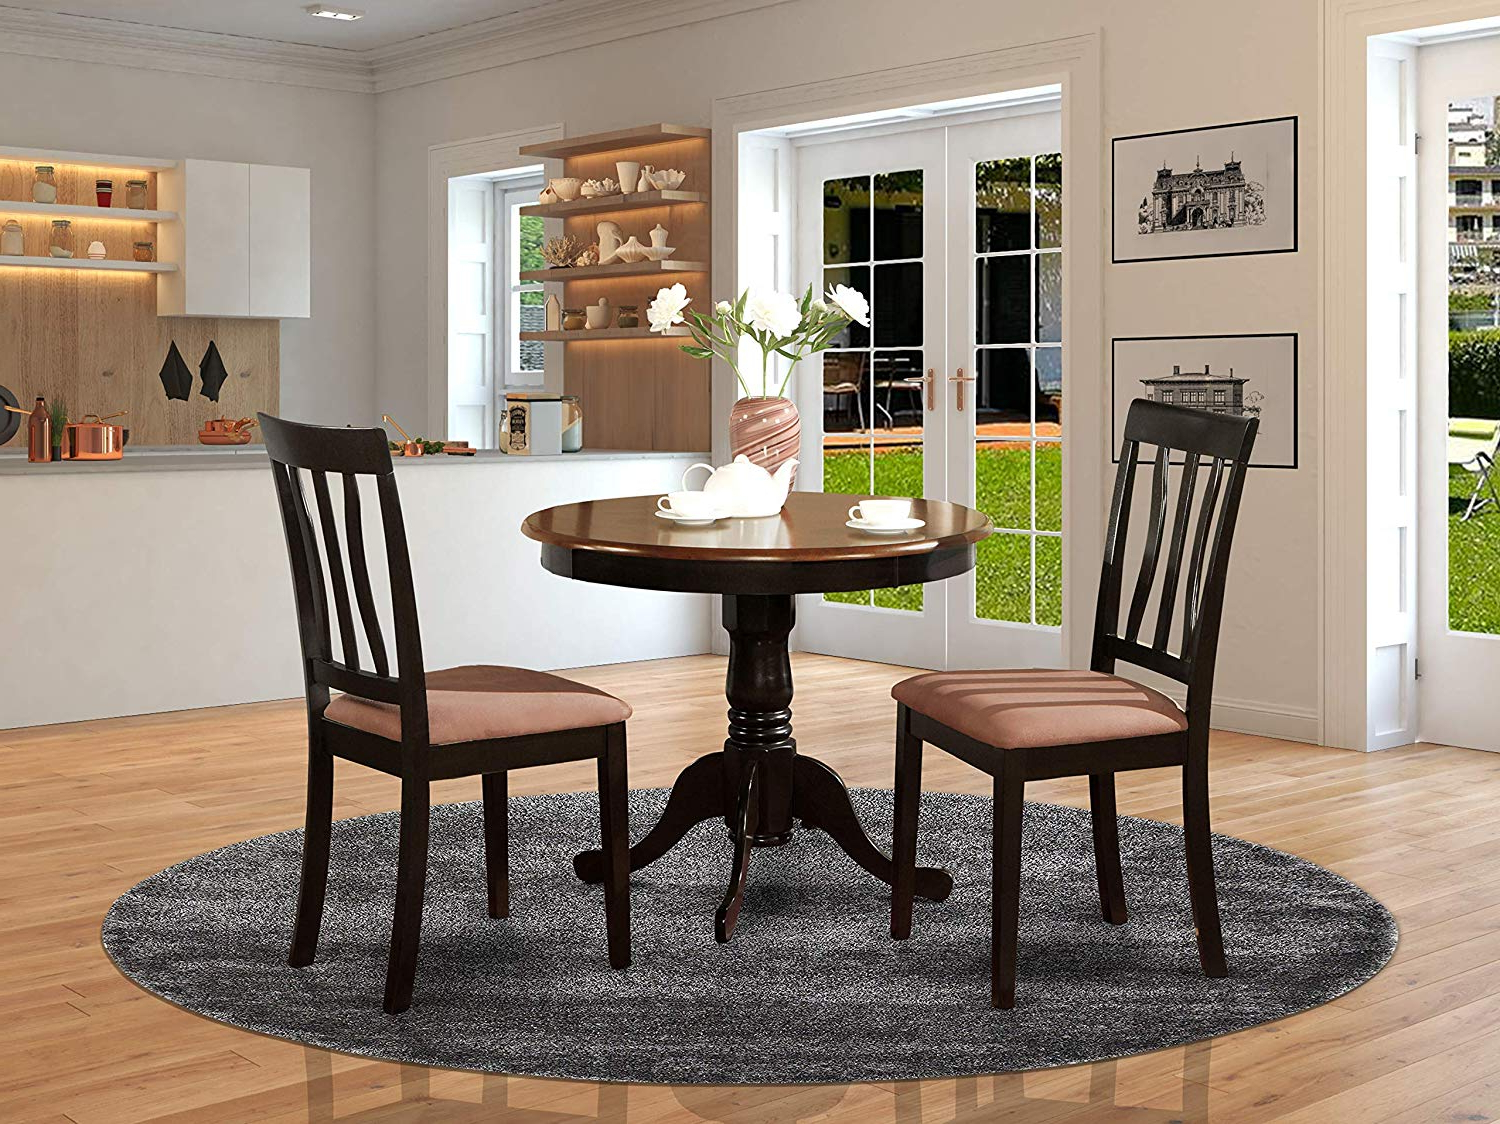 Anti3 Blk Lc 3 Pc Kitchen Table Set Breakfast Nook With 2 Kitchen Dining Chairs Inside Most Recently Released Antique Black Wood Kitchen Dining Tables (View 27 of 30)